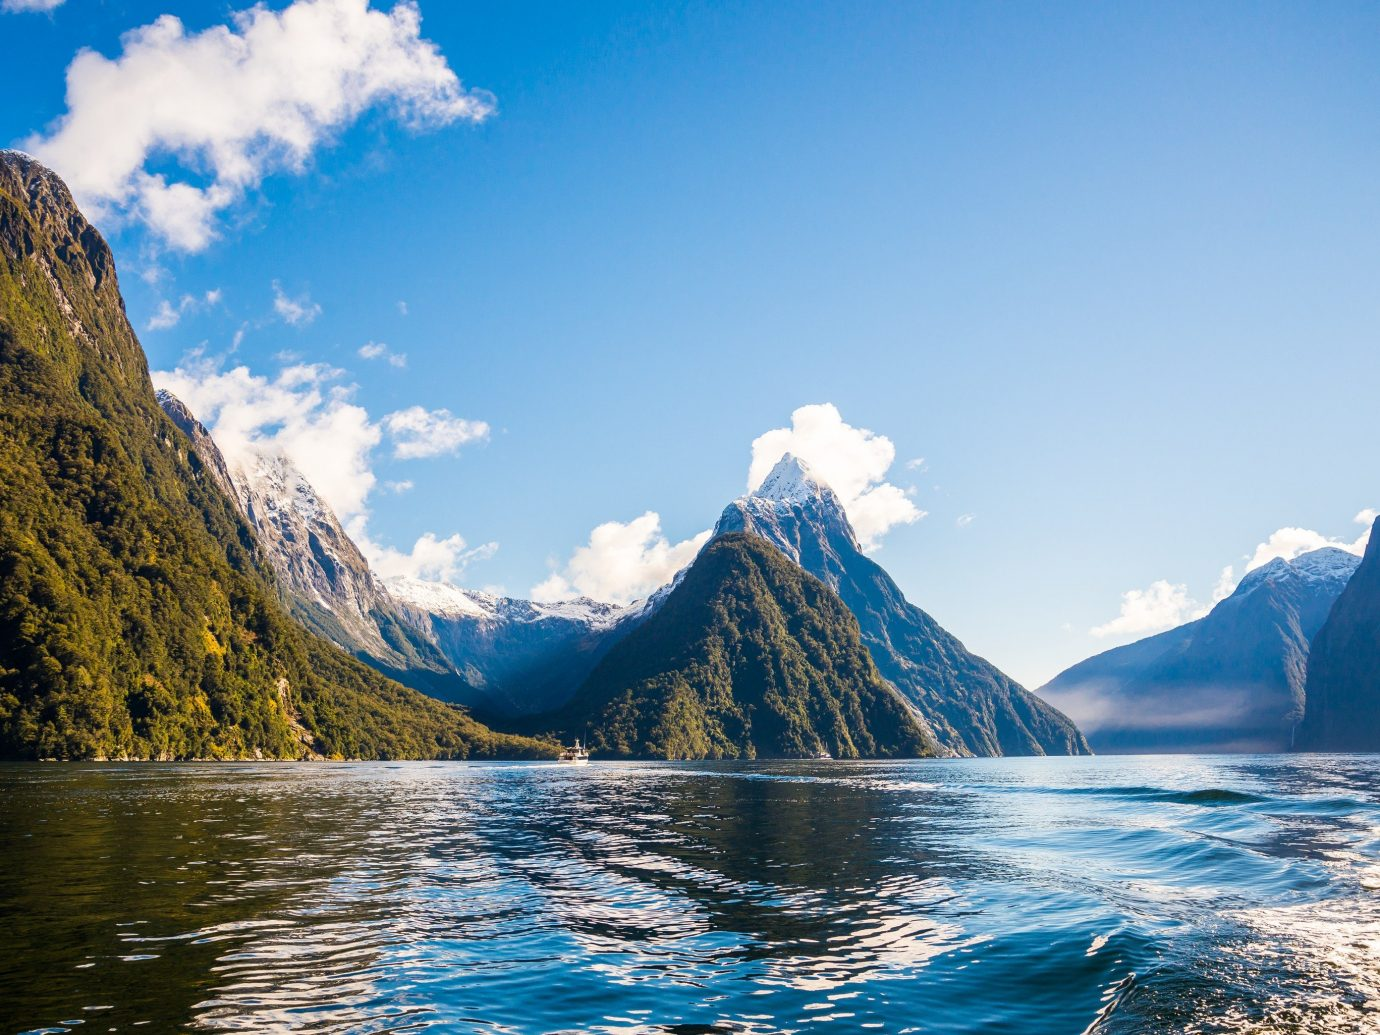 National Parks Trip Ideas mountain outdoor sky water Nature mountainous landforms geographical feature landform fjord Lake mountain range Sea reflection loch glacial landform vehicle surrounded clouds day distance